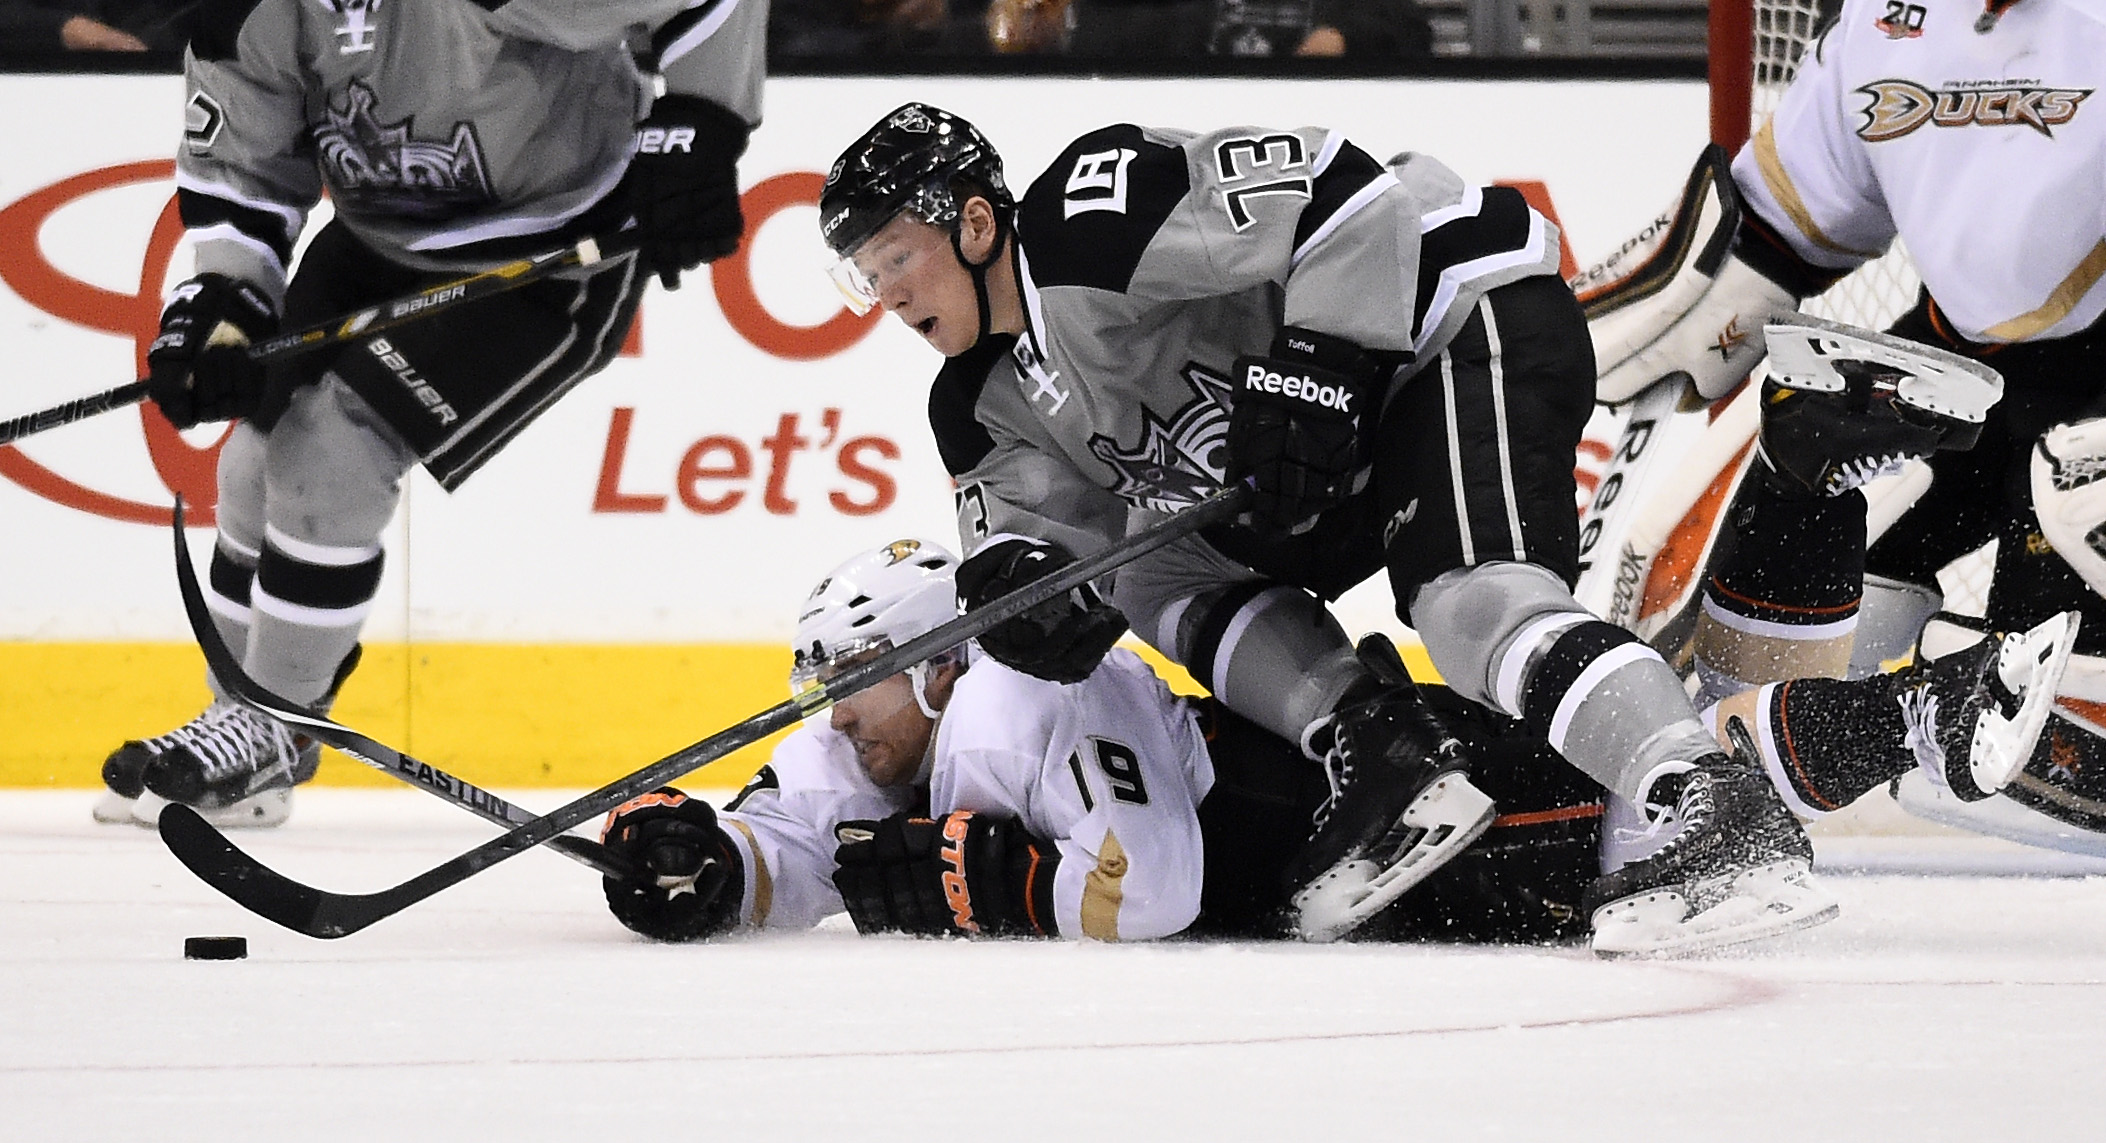 Anaheim Ducks defenseman Stephane Robidas, below, and Los Angeles Kings center Tyler Toffoli battle for the puck during the third period of an NHL hockey game, Saturday, April 12, 2014, in Los Angeles